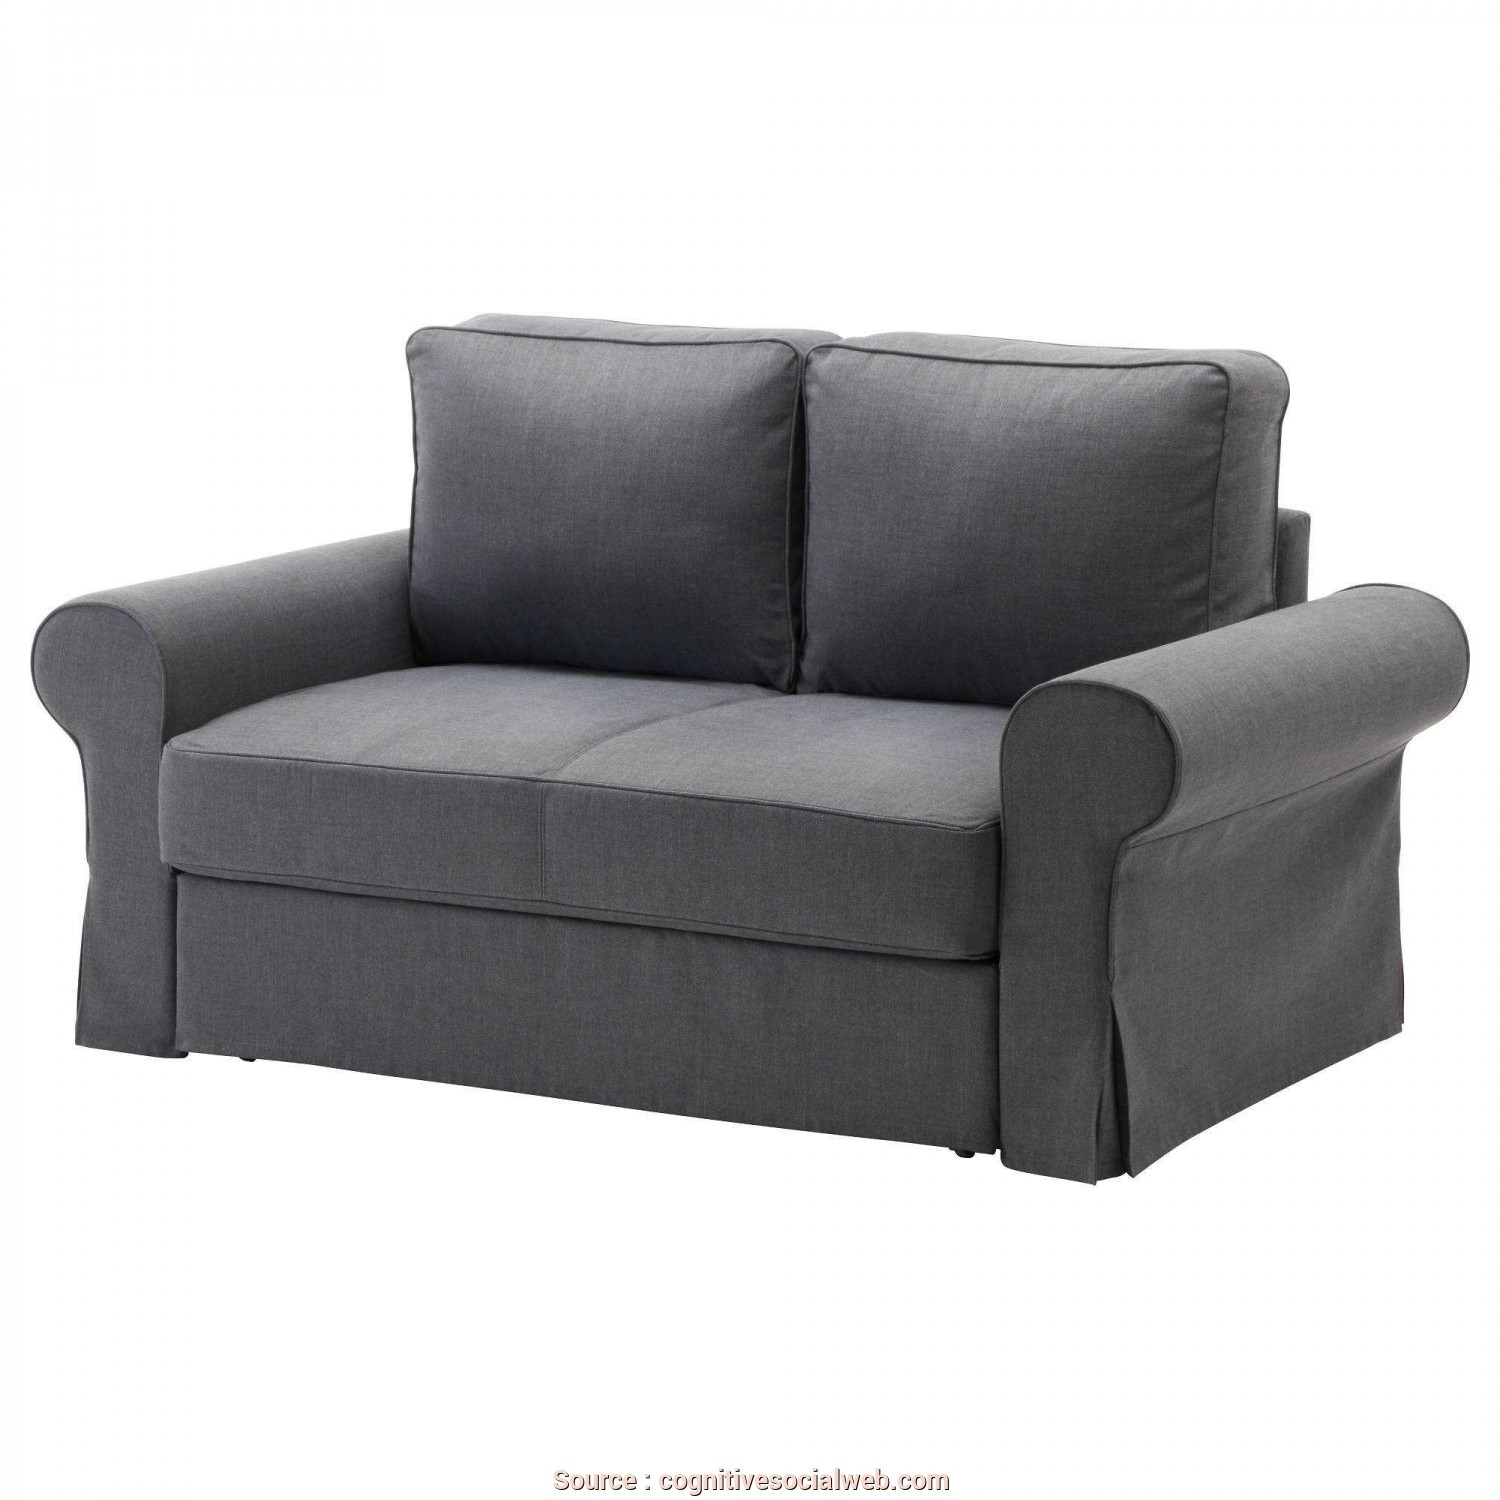 Asarum Ikea Usato, Bello Ikea Convertible Backabro, Seat Sofa, Nordvalla Dark Grey Ikea